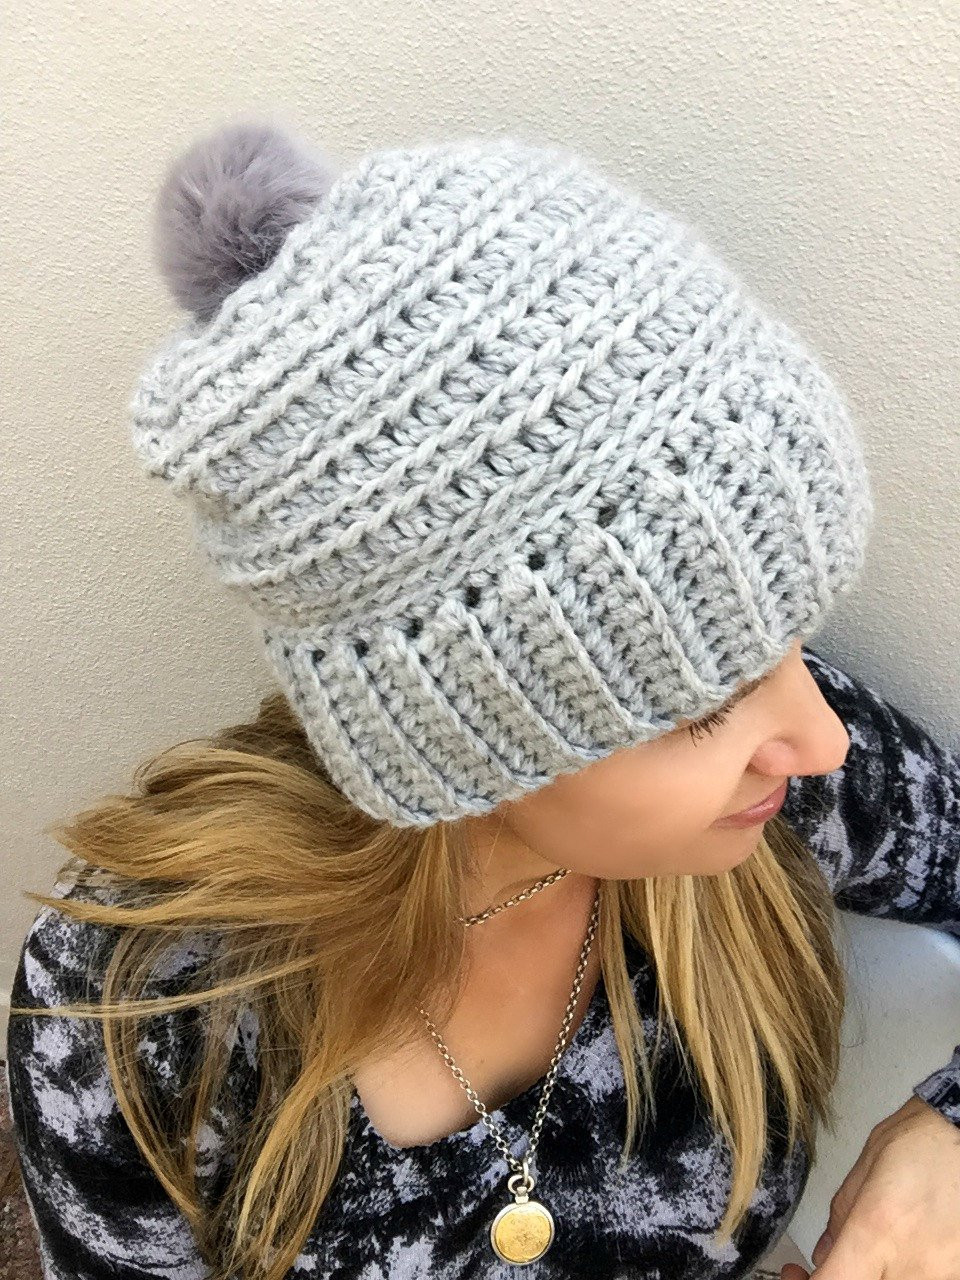 Inspirational Slouchy Ribbed Beanie Pattern for Chunky Yarn Crochet Hat Chunky Crochet Beanie Pattern Of Elegant Chunky Knit Hat Pattern Roundup 12 Quick & Cozy Patterns Chunky Crochet Beanie Pattern